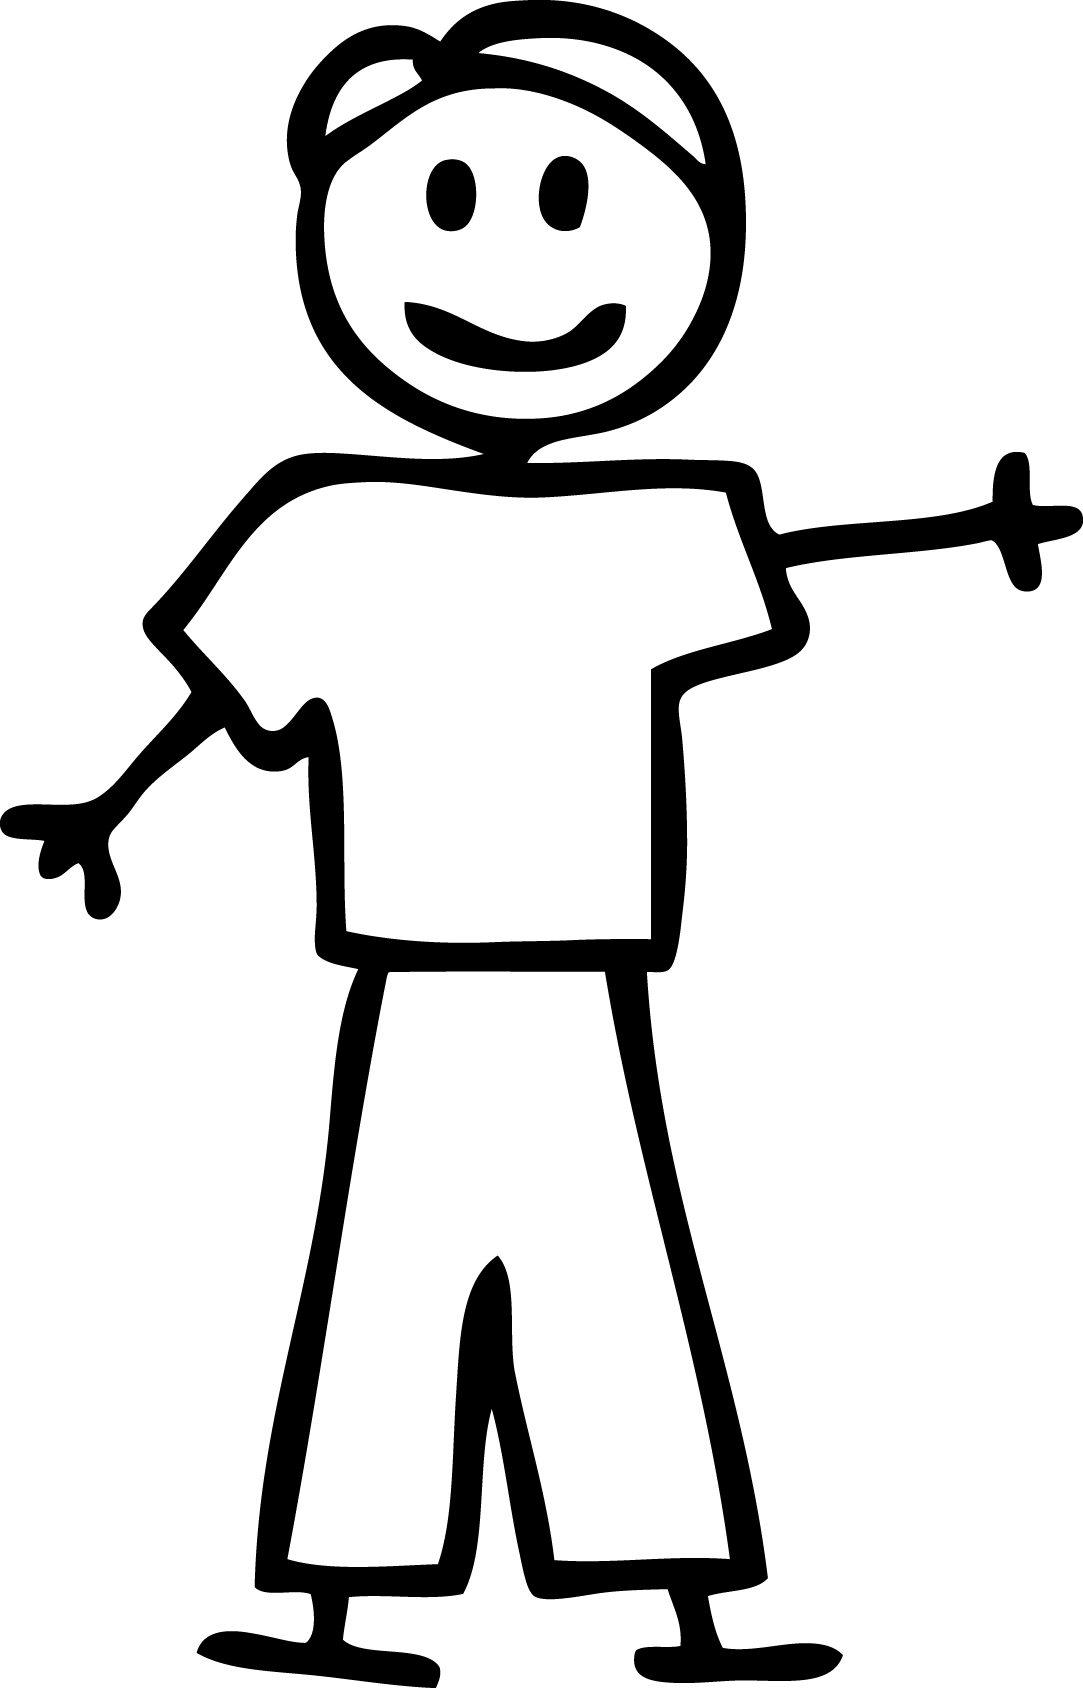 Stick person weak man stick figure clipart clipartfox.